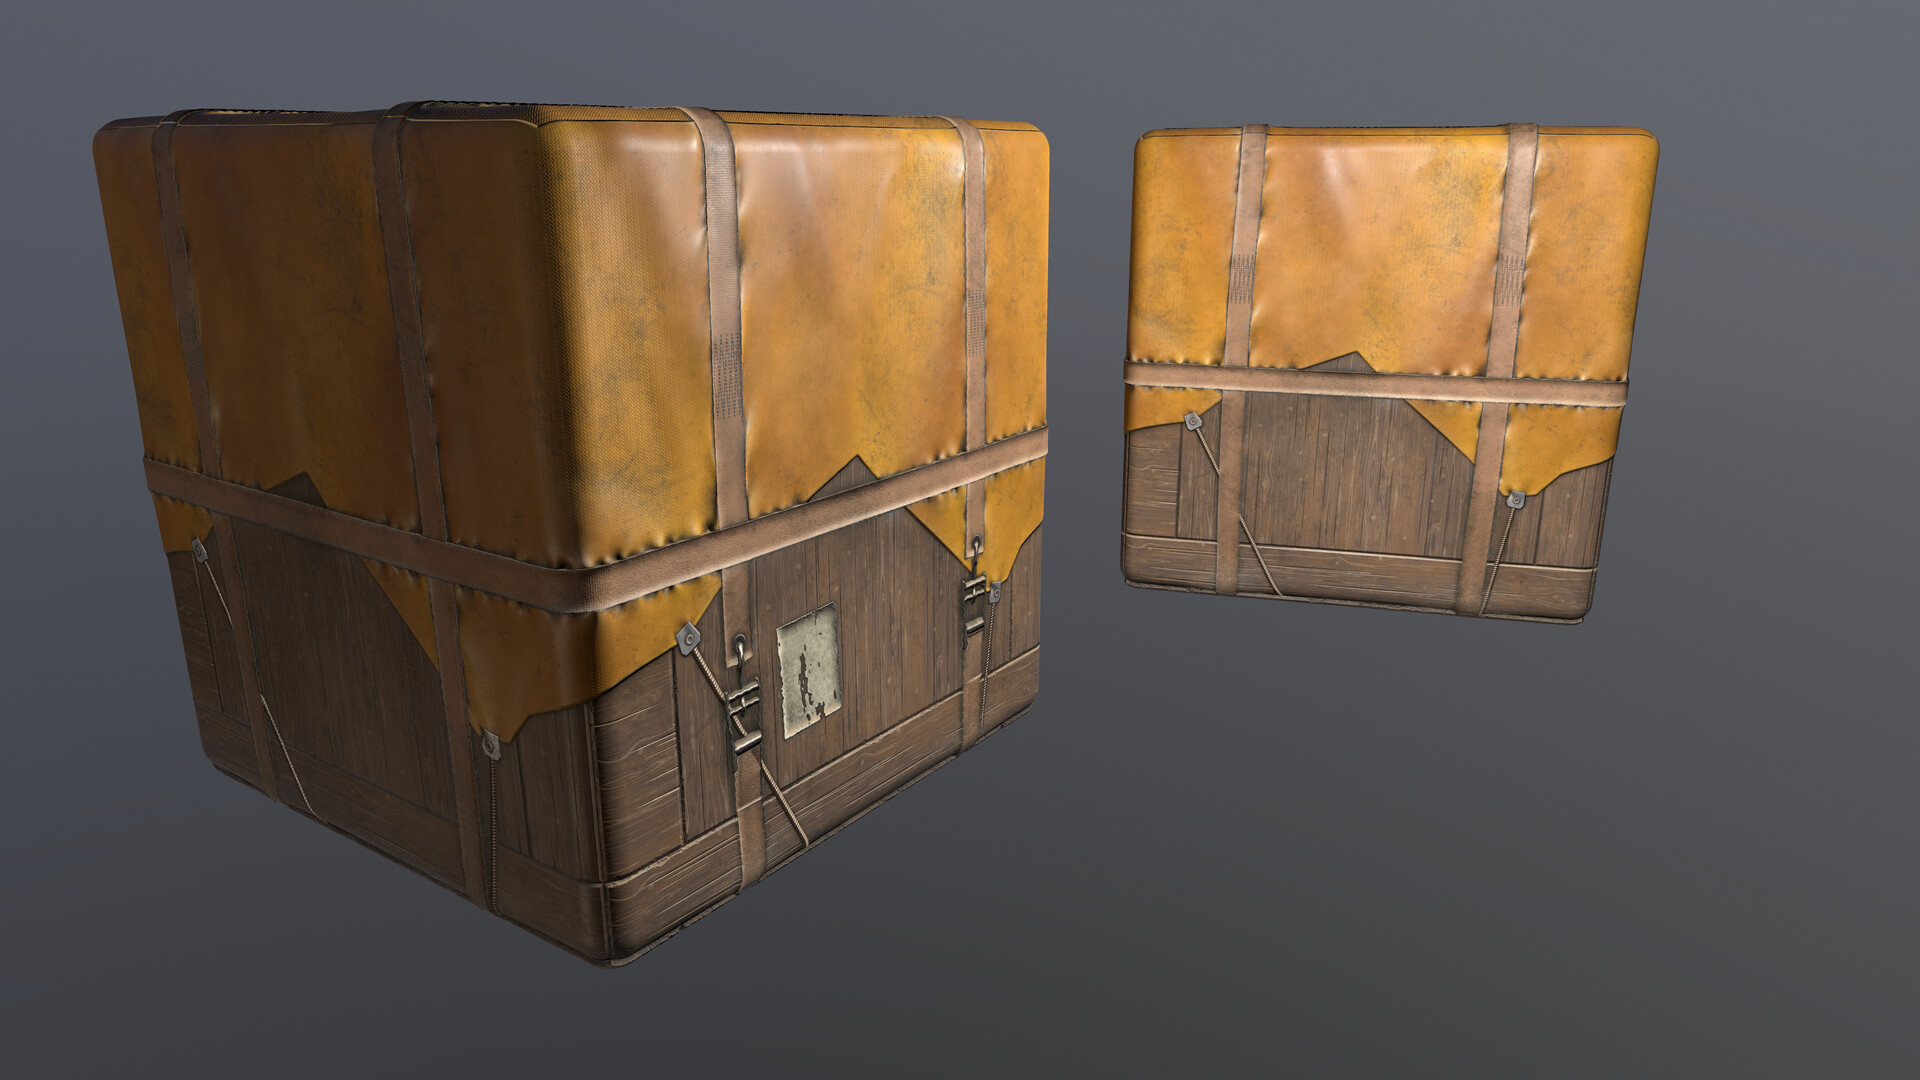 Crate with multiple materials on each side